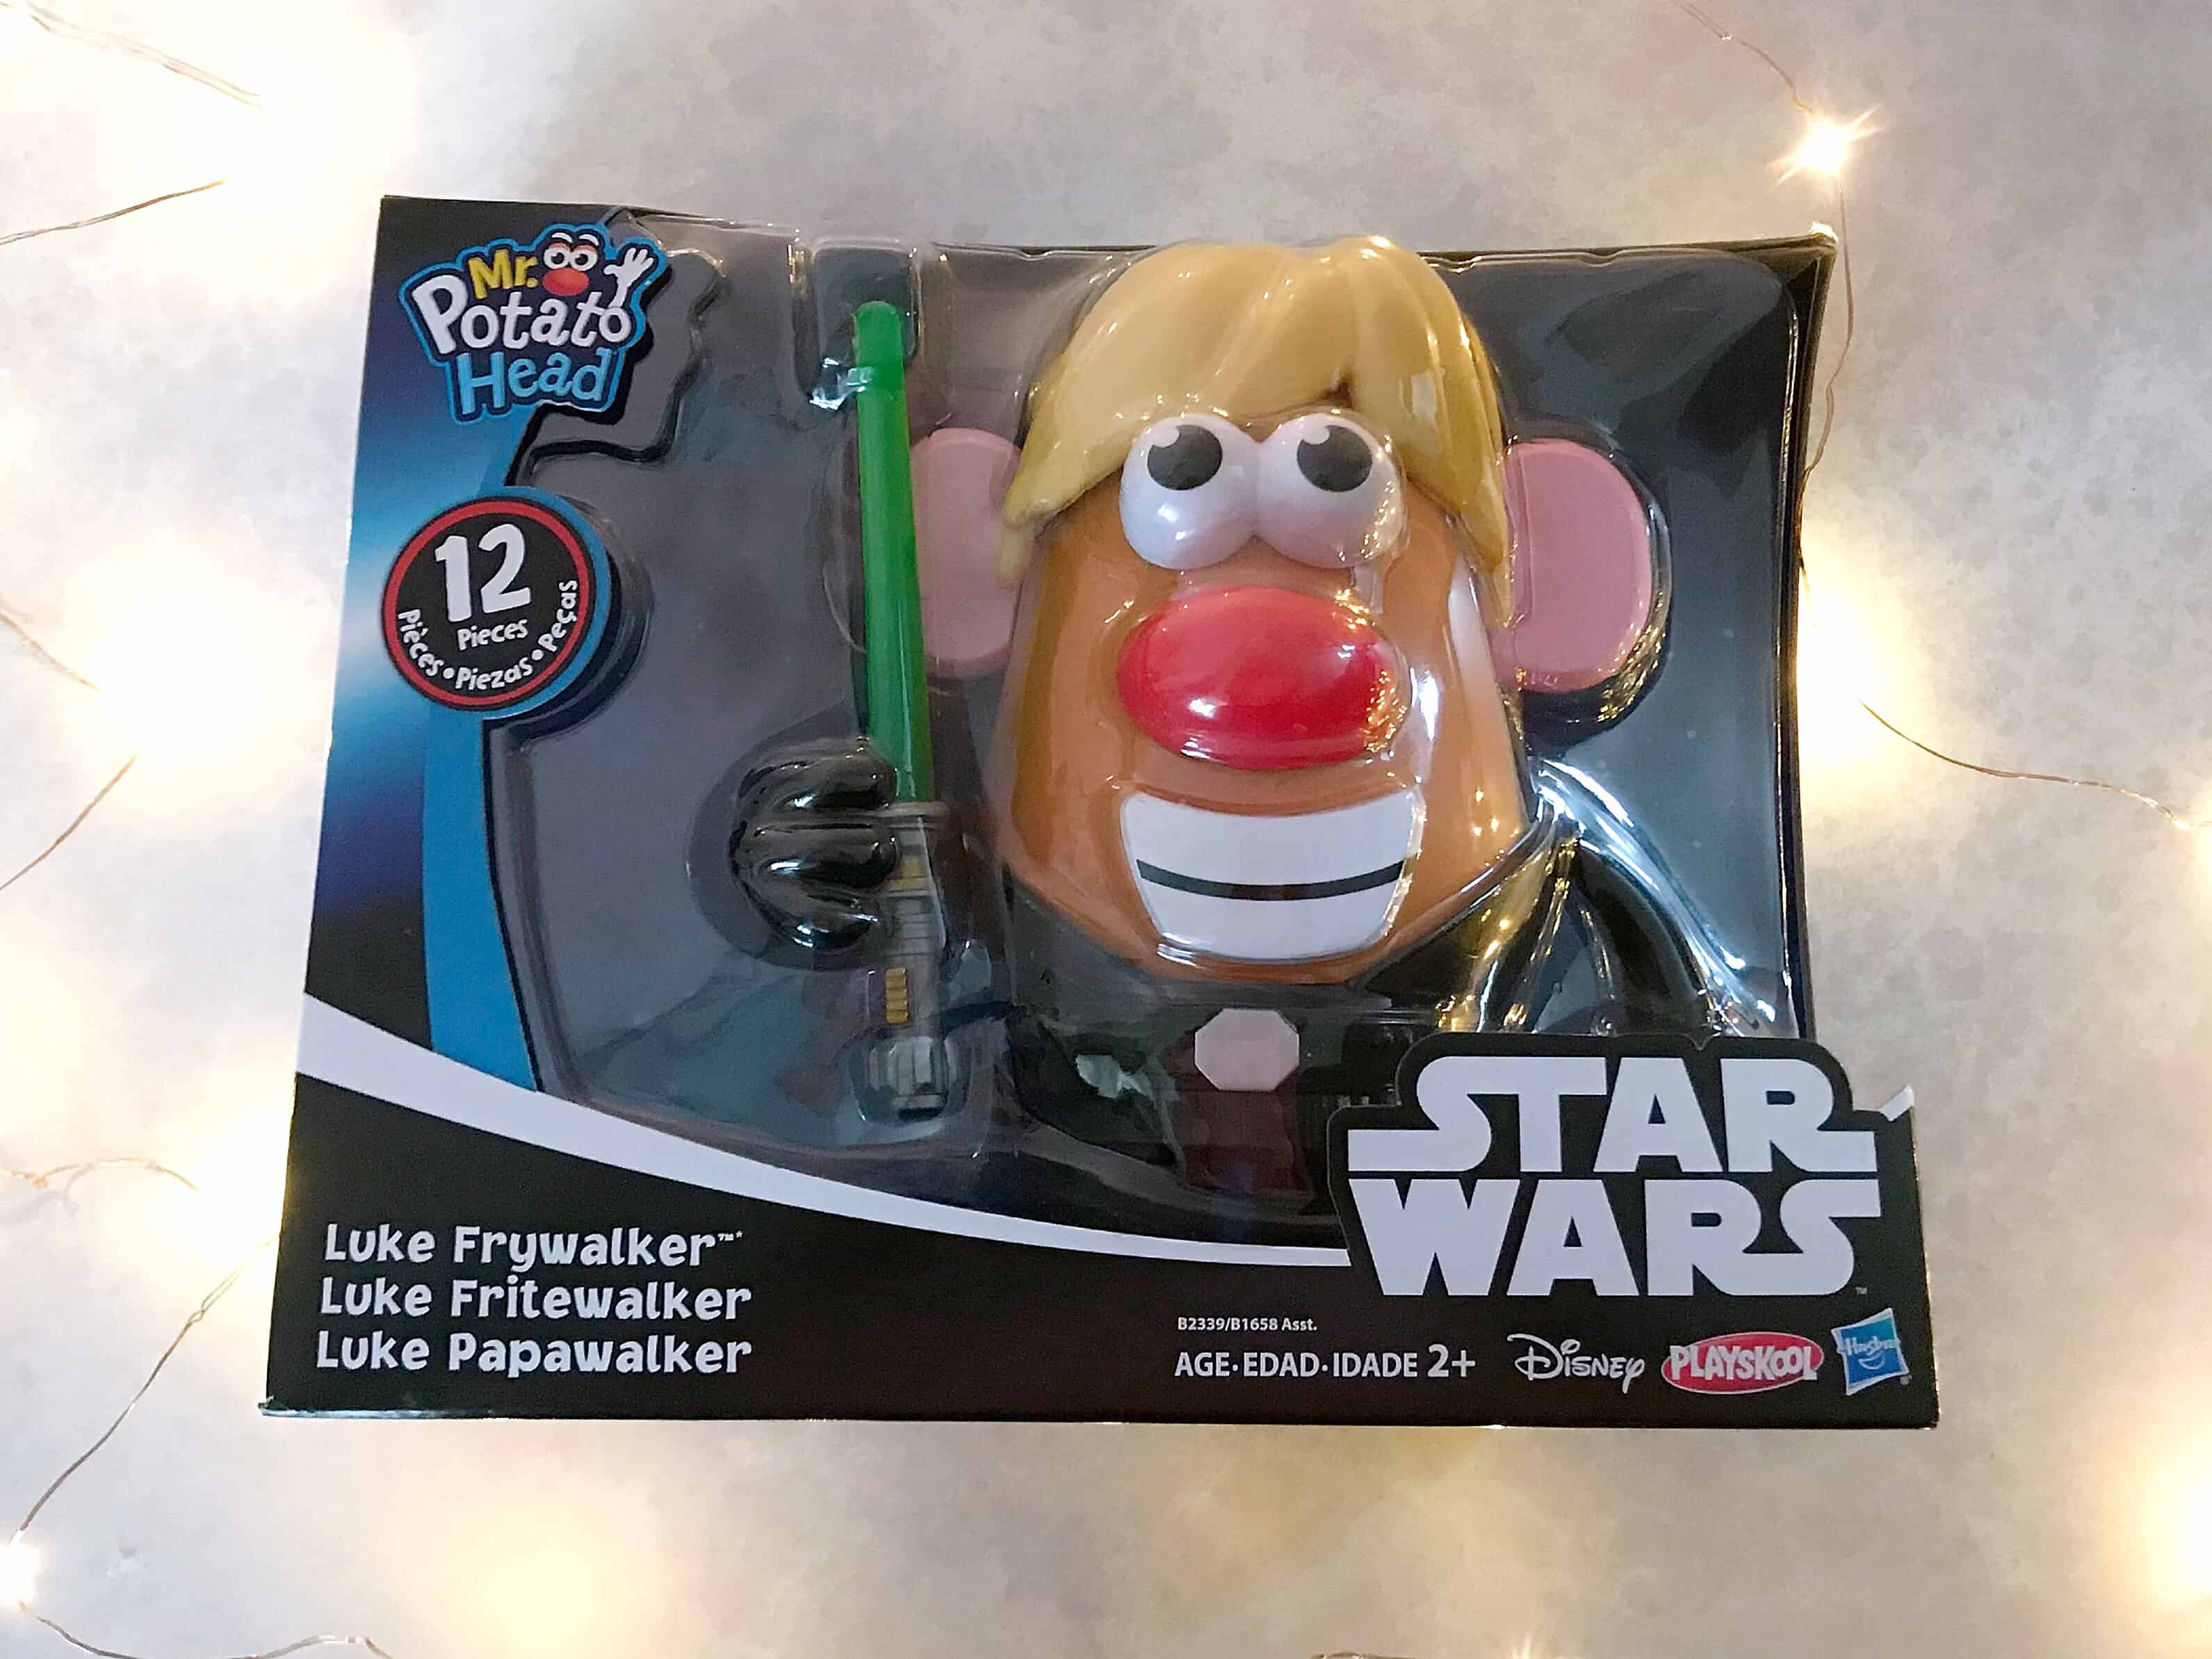 Star Wars Luke Frywalker Mr. Potato Head